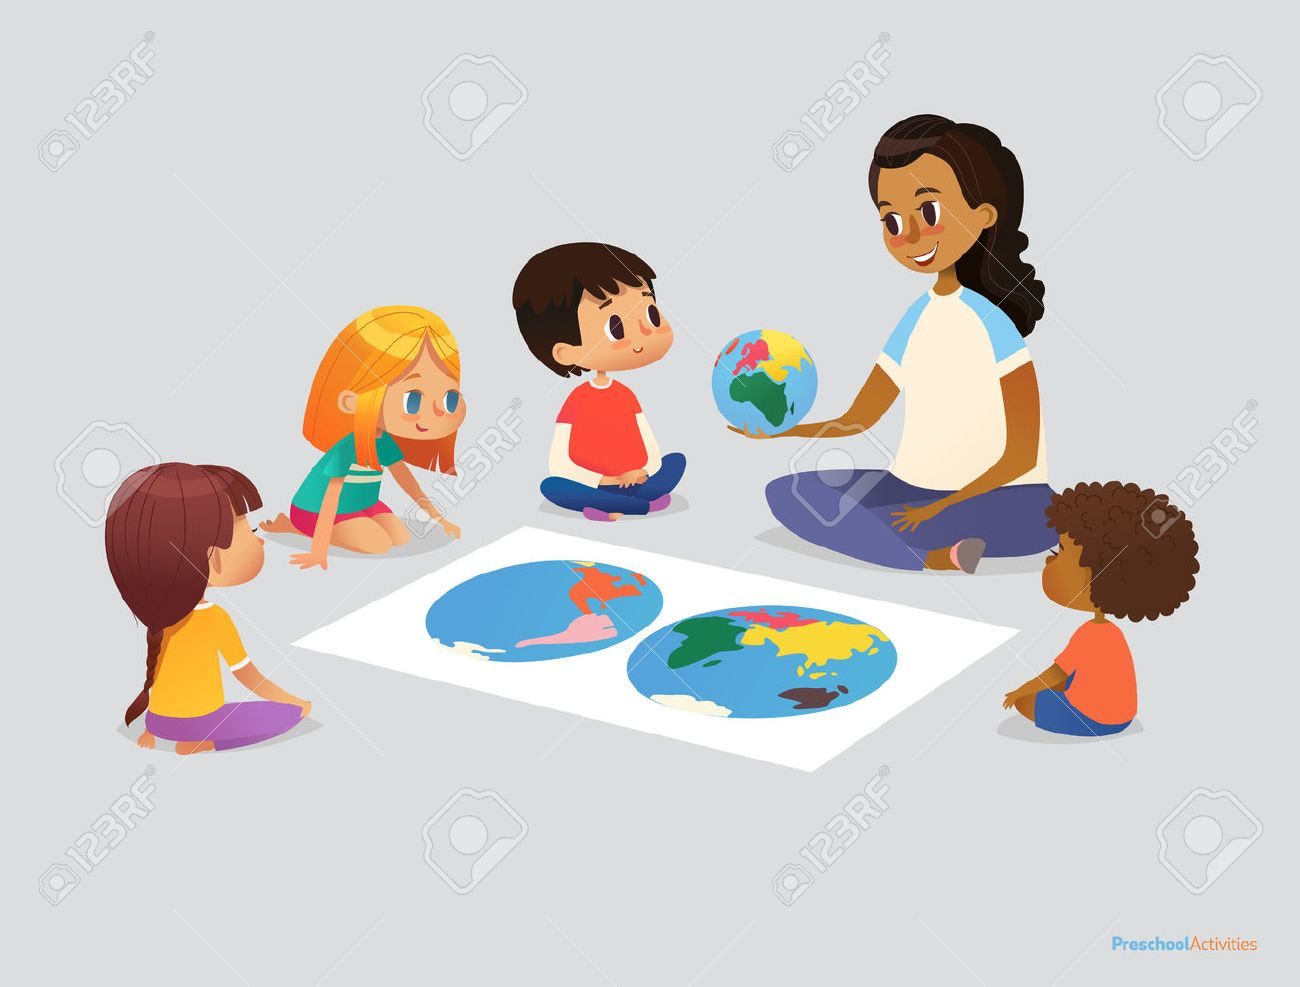 Happy school kids and teacher sit in circle around atlas and discuss geographical questions during lesson. Preschool activities concept. Vector illustration for poster, advertisement, website, banner - 77925537